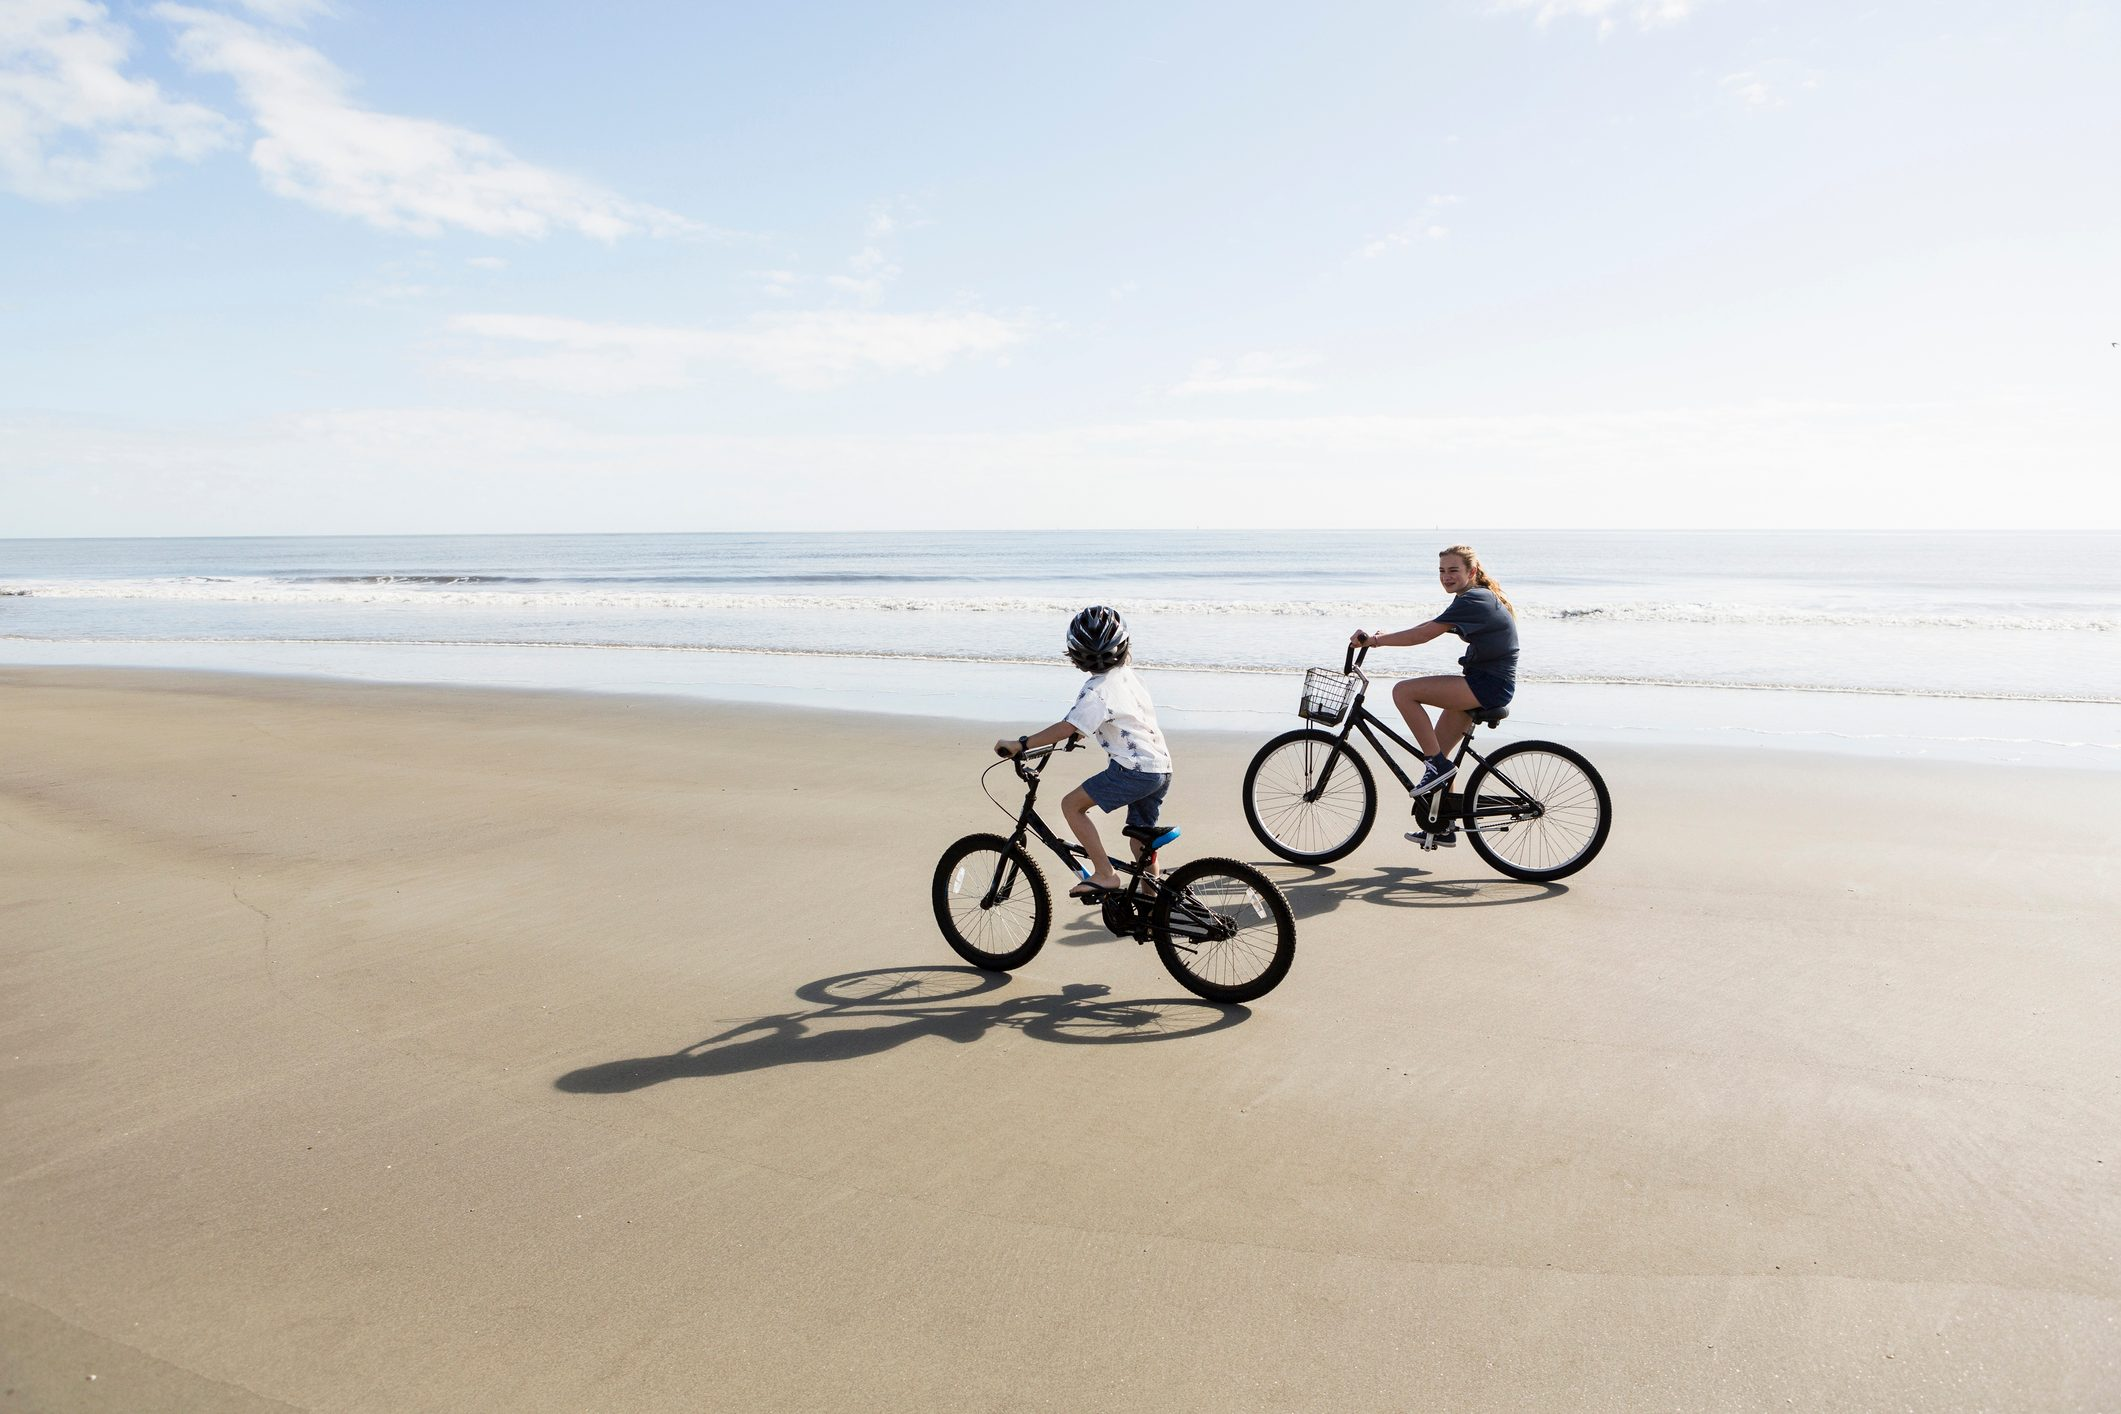 Siblings, a boy and girl cycling on a beach.